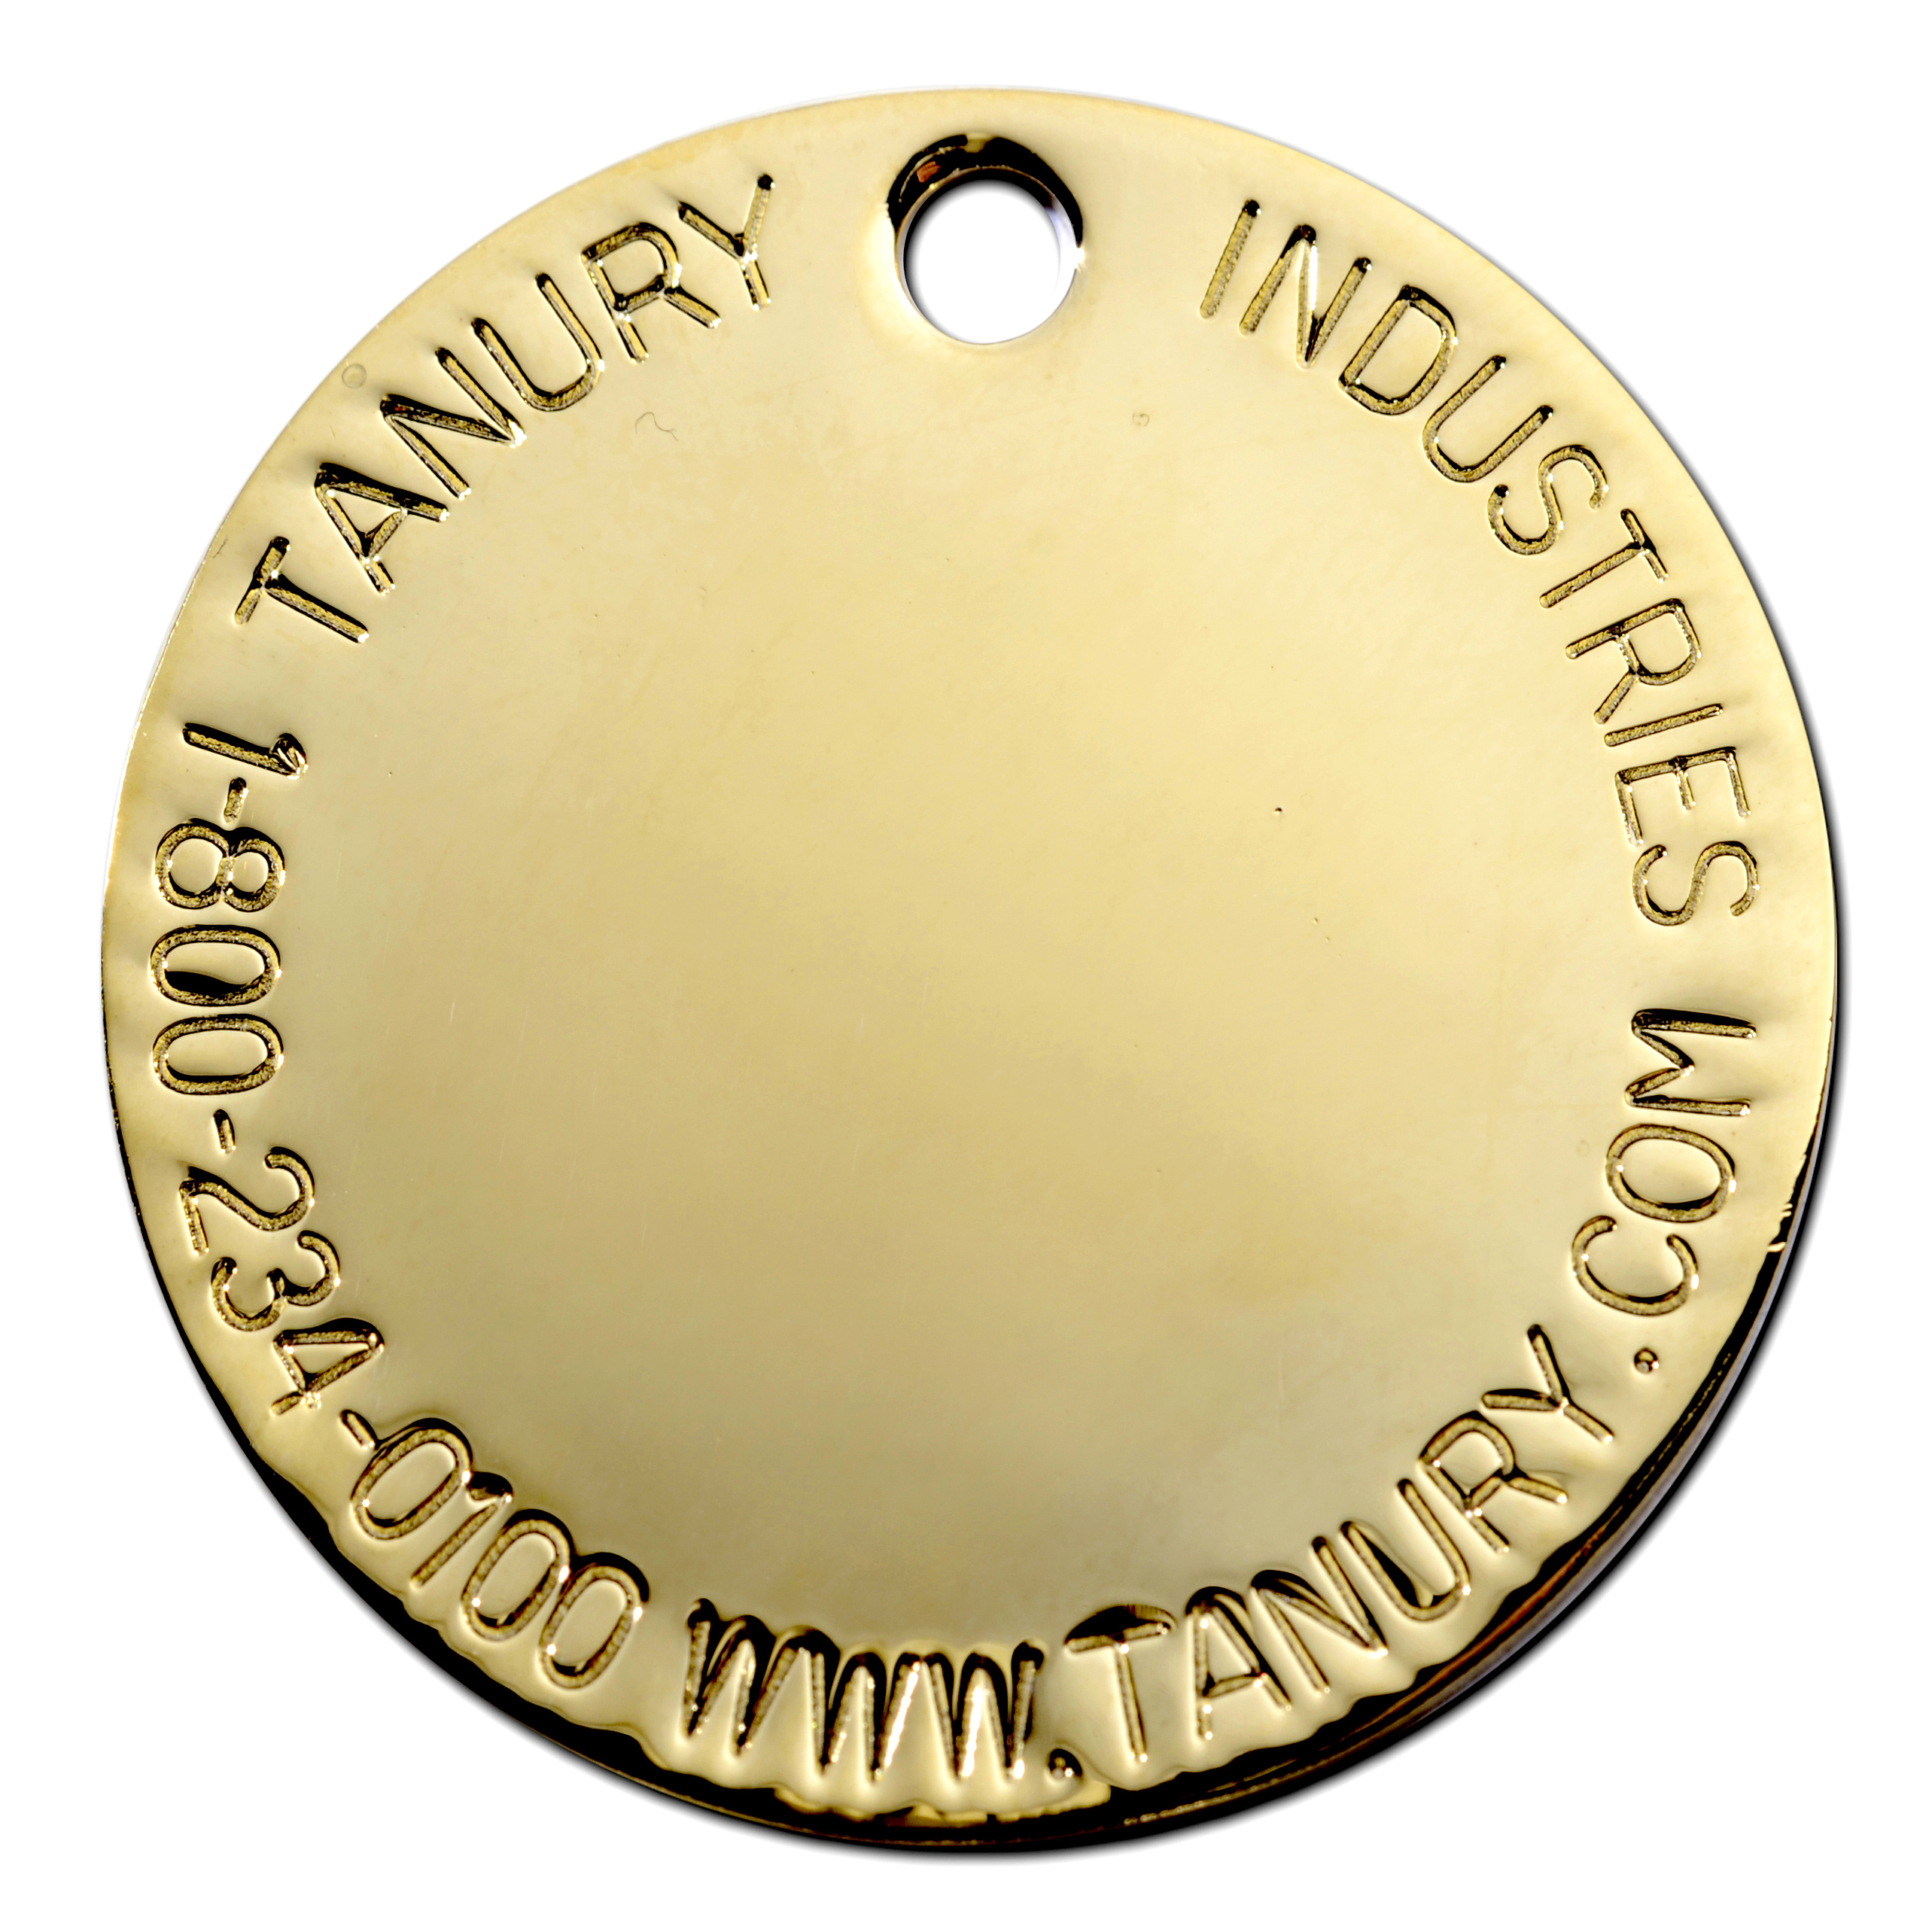 tanury-industries-14ktgold-polished-plating